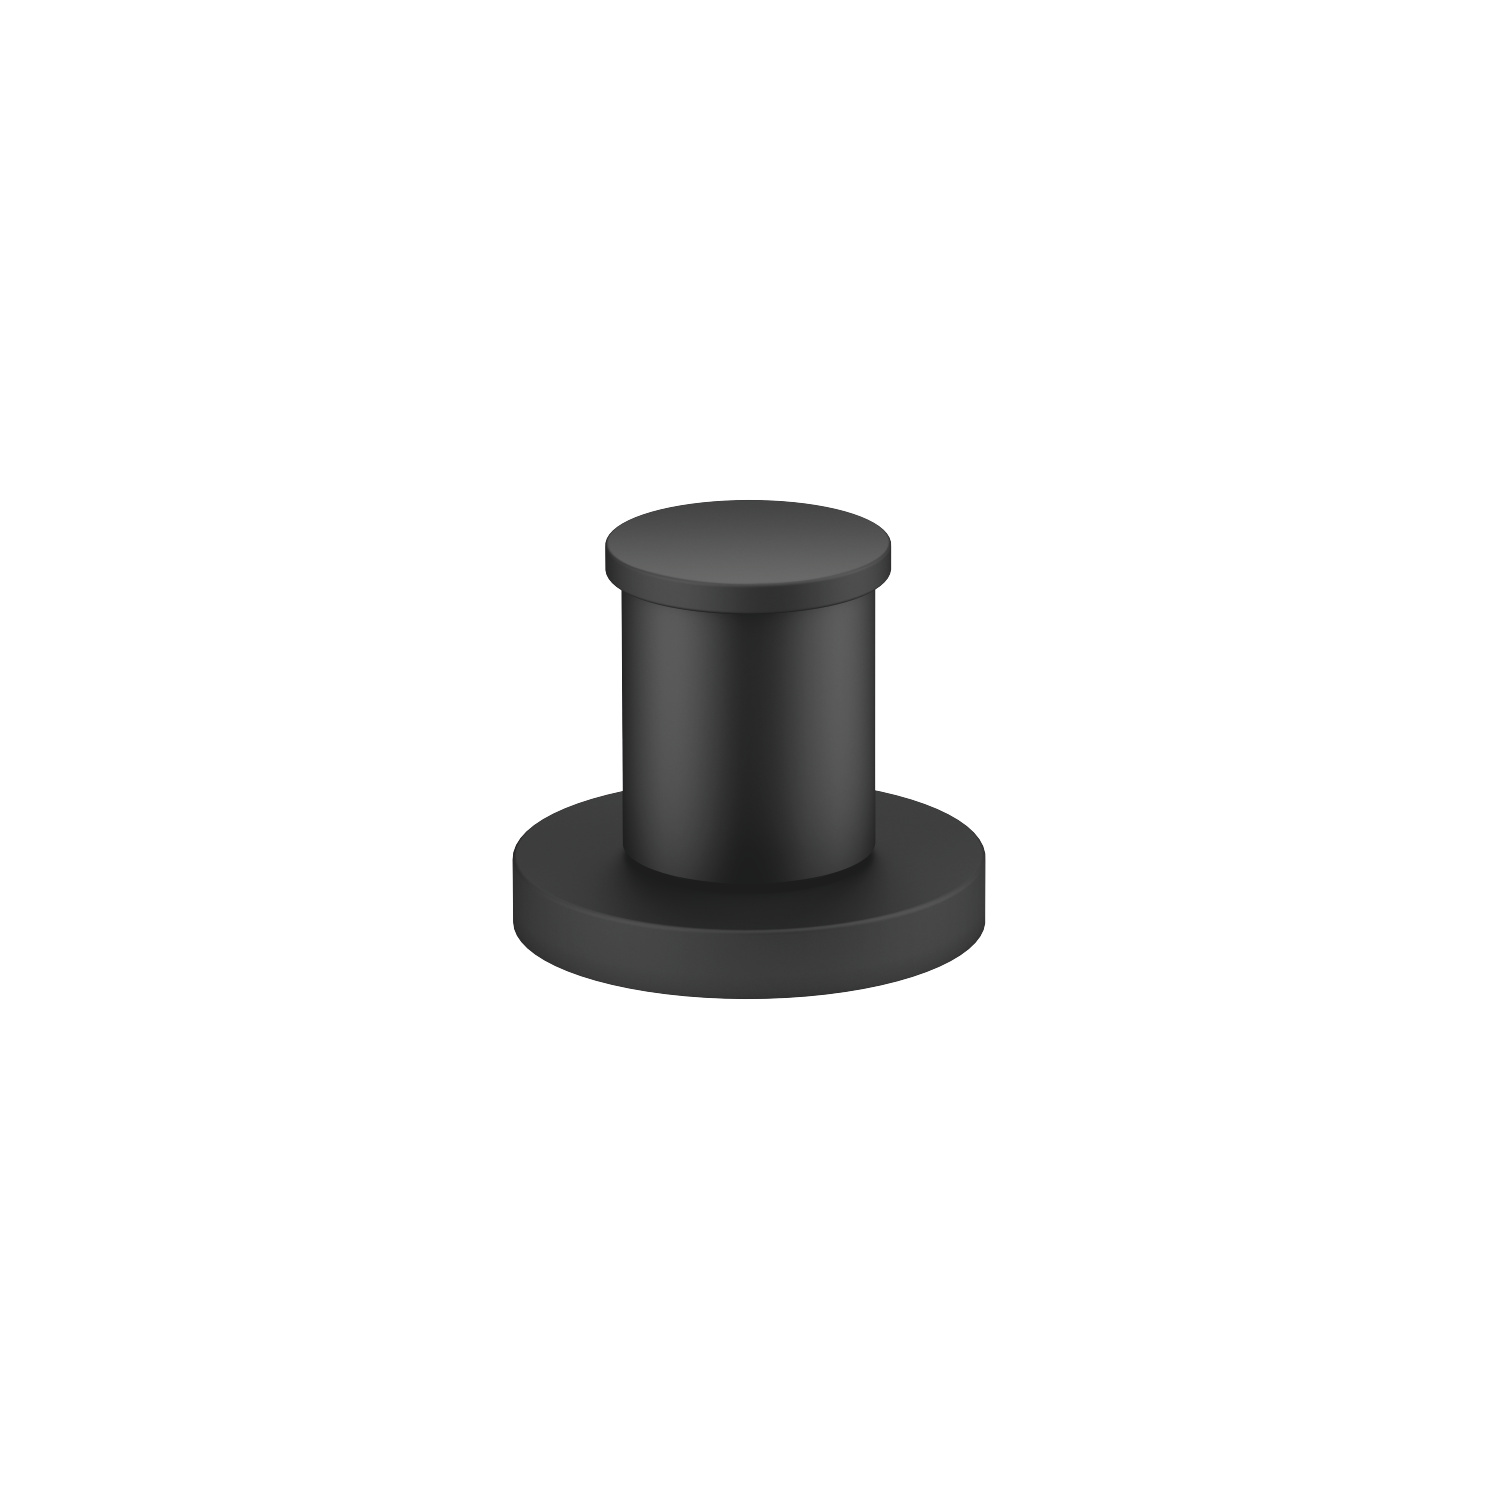 Two-way diverter for bath rim or tile edge installation - matt black - 29 140 660-33